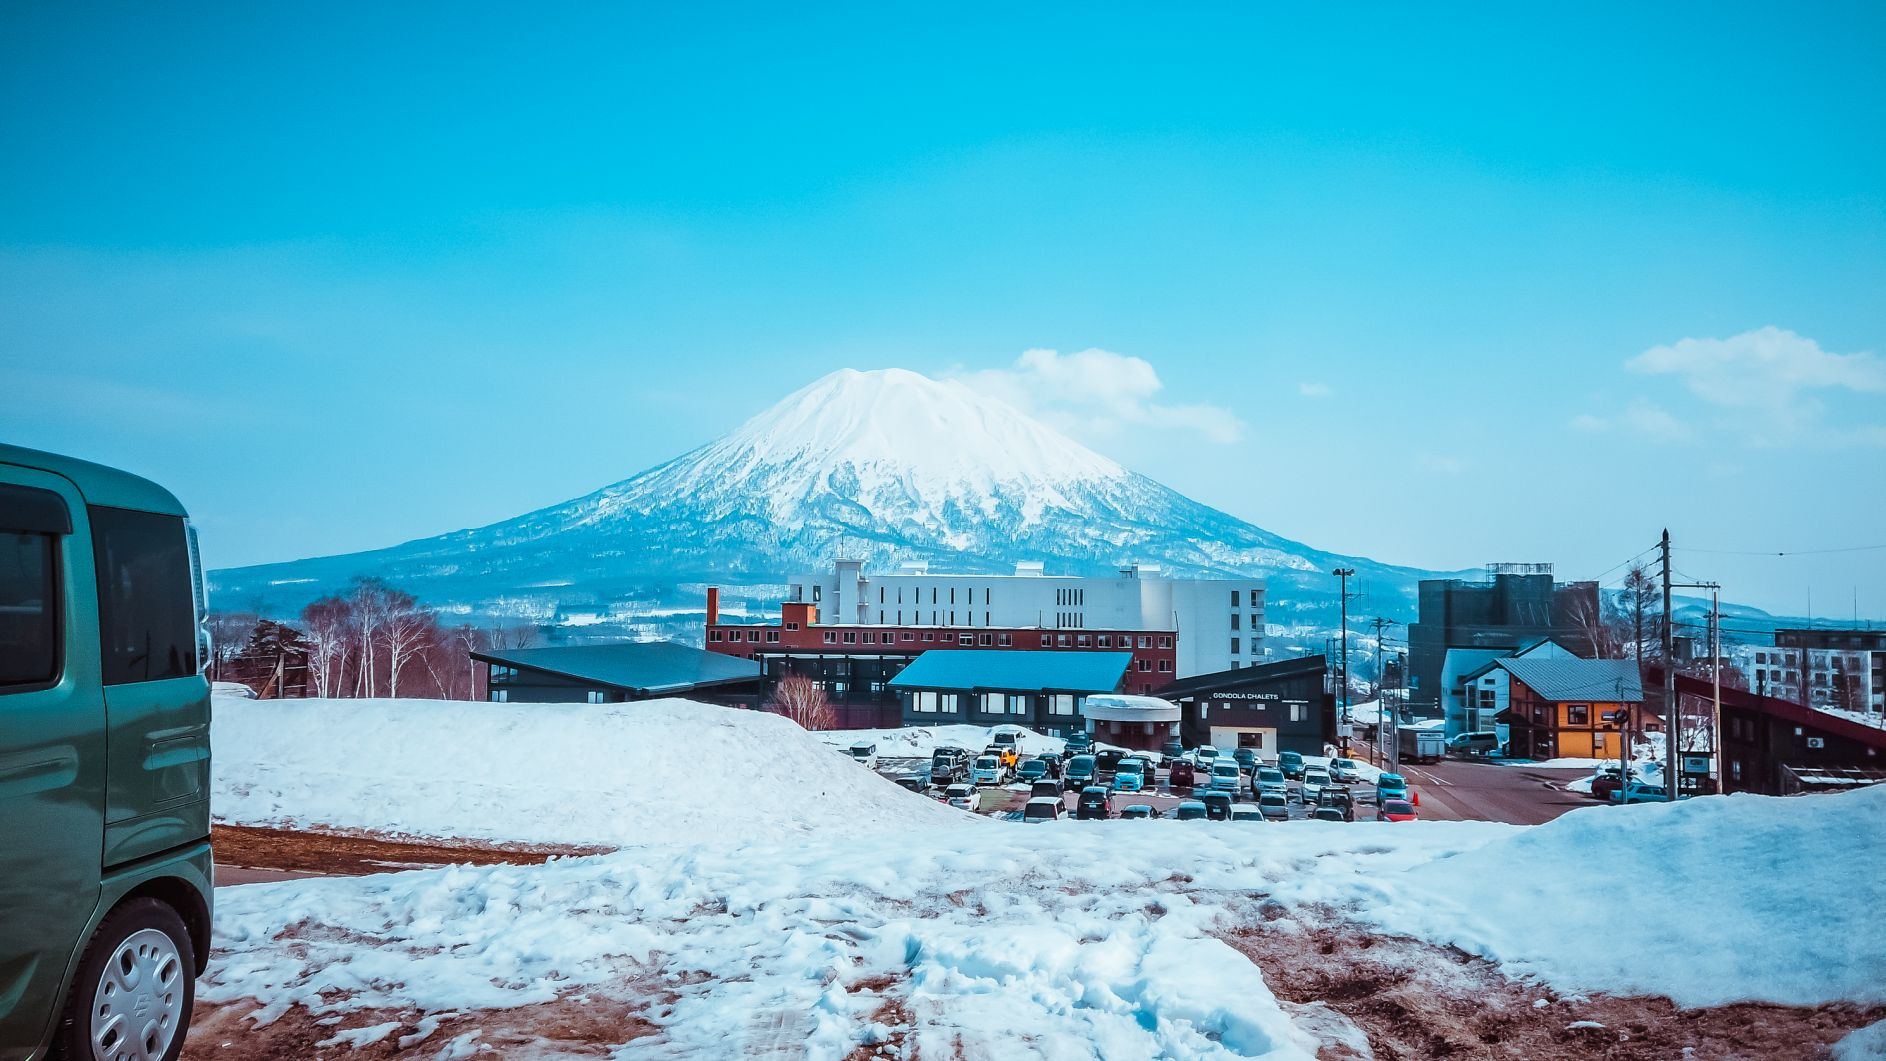 japan-3d2n-niseko-itinerary-where-to-stay